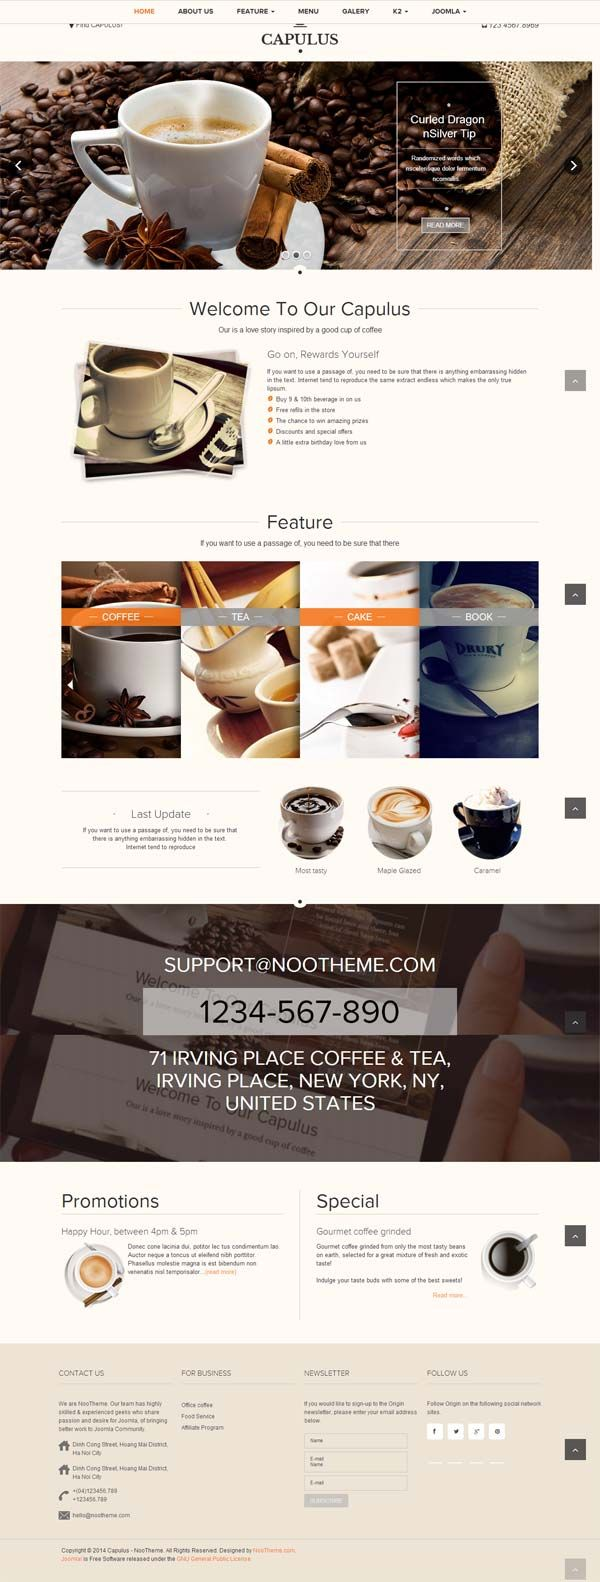 Noo Capulus Coffee Joomla Template is Responsive Joomla Template best fit for various tea, coffee, bistro and bakery shops  http://goo.gl/cYQuxf  #NooCapulusCoffeeTemplate #CoffeeJoomlaTemplates #ResponsiveJoomlaTemplates